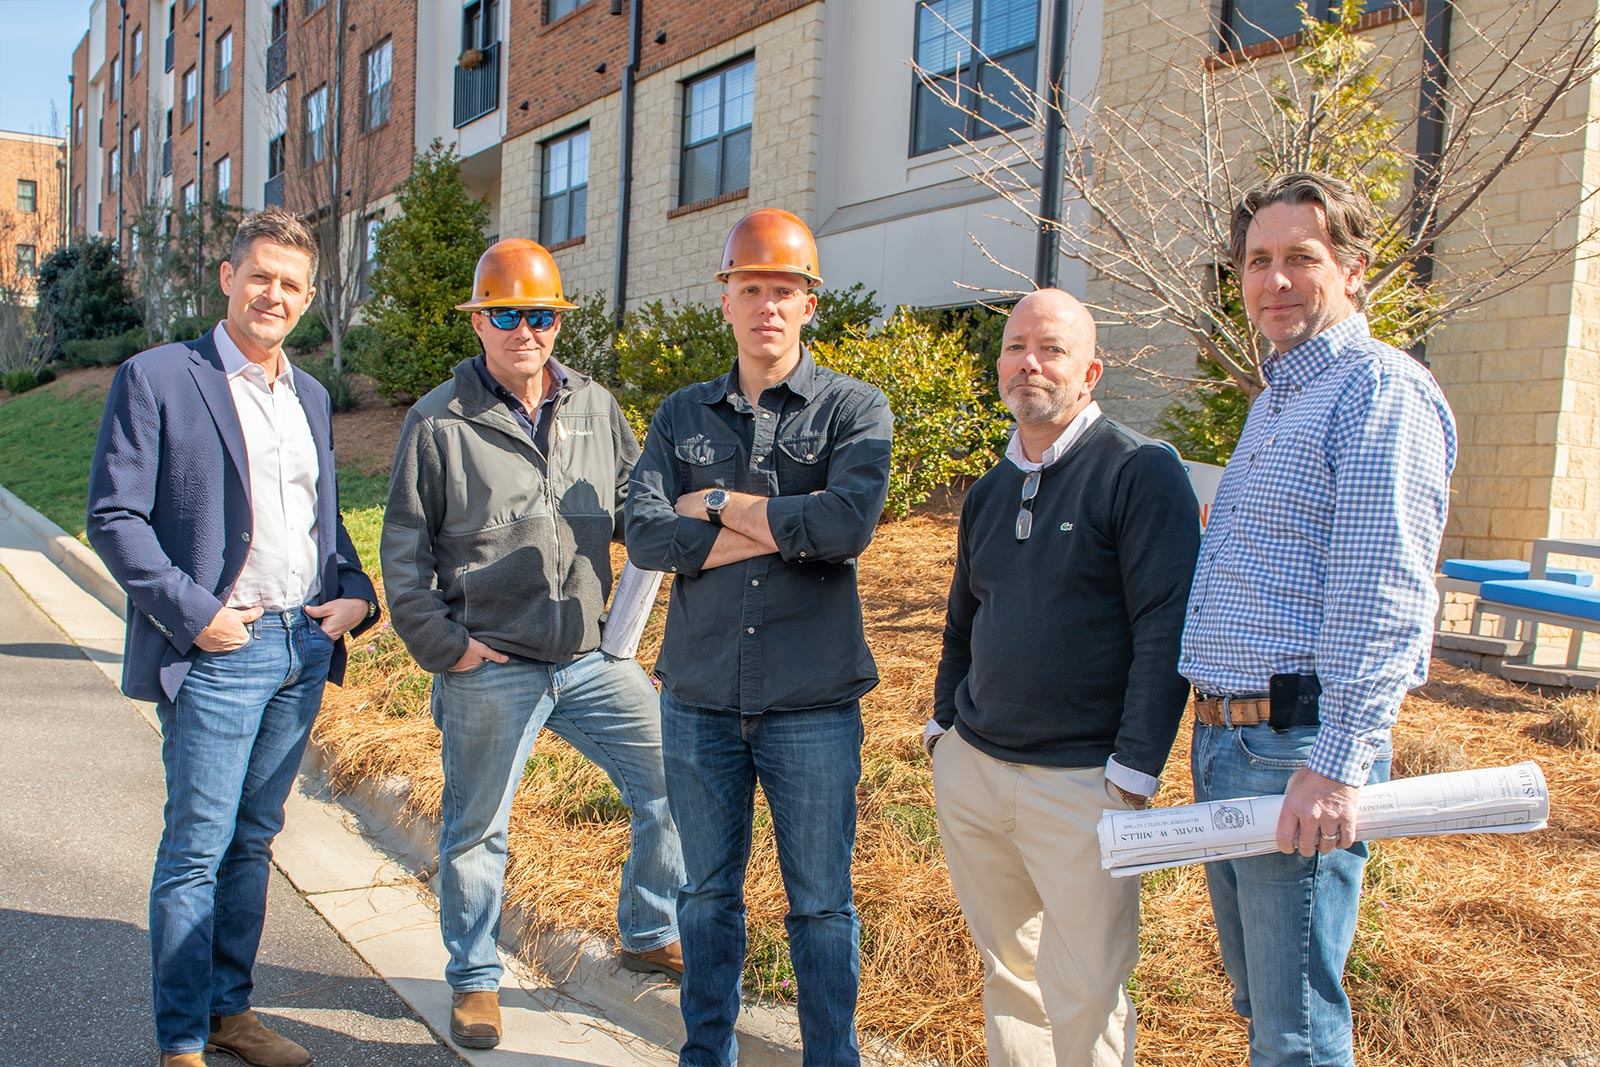 evolve construction team in hard hats